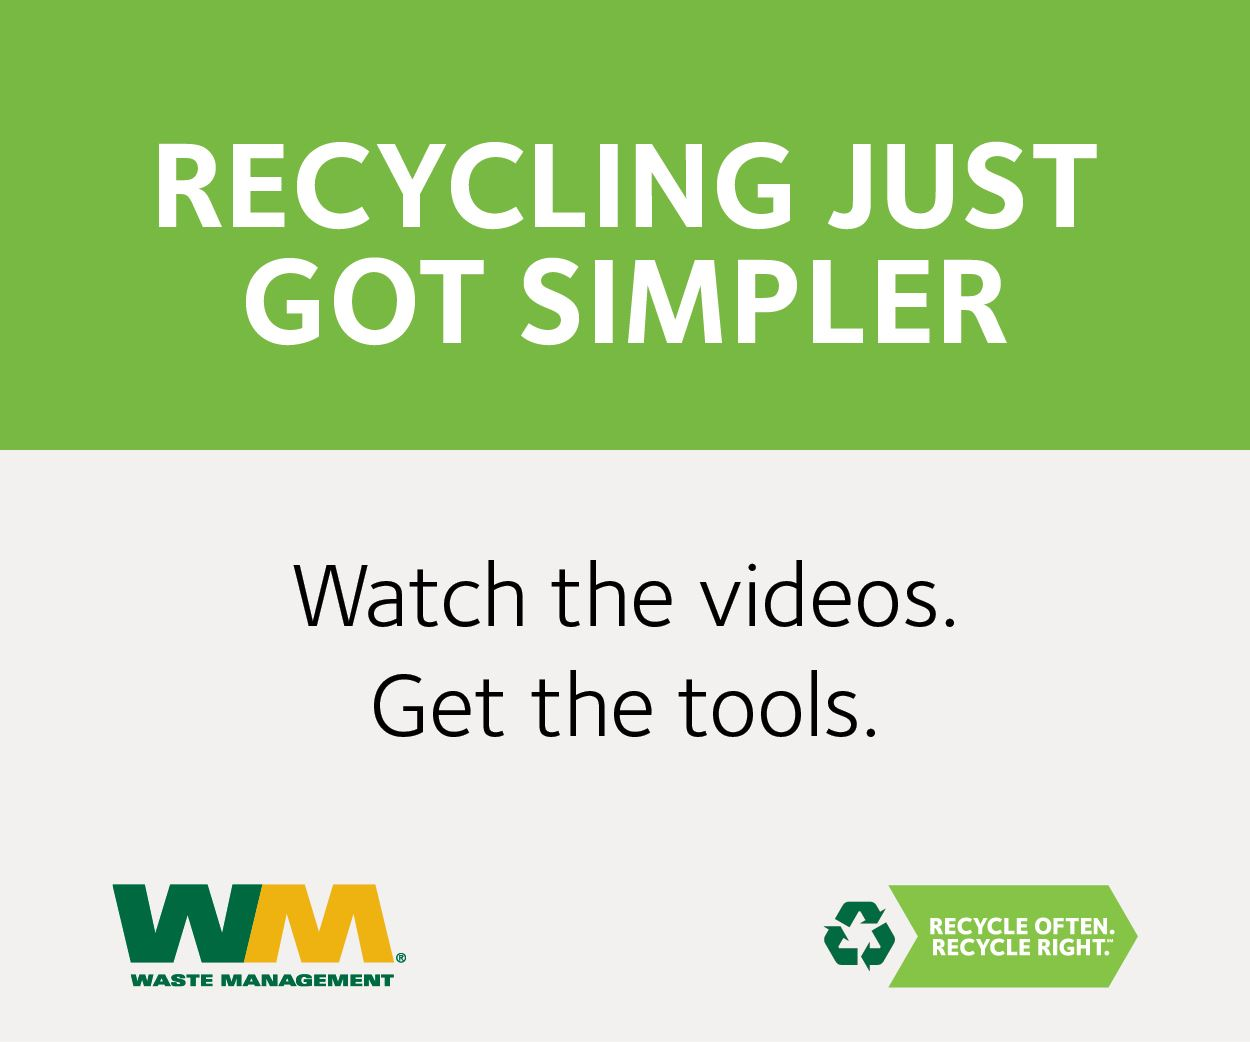 Recycling Just Got Simpler - Watch the videos and get the tools